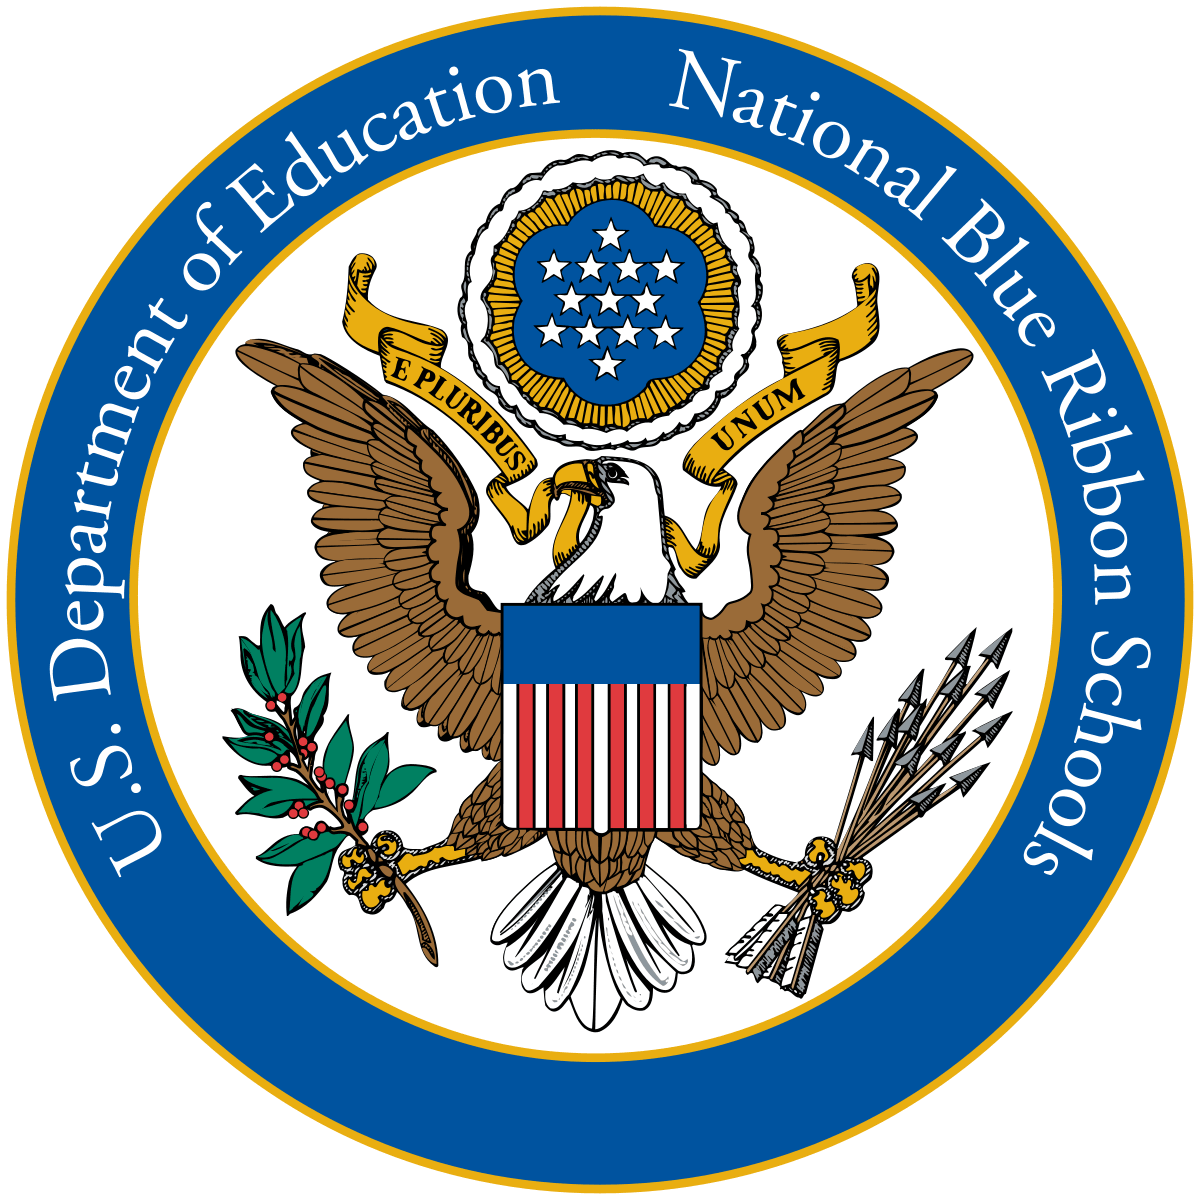 National Blue Ribbon Schools Seal